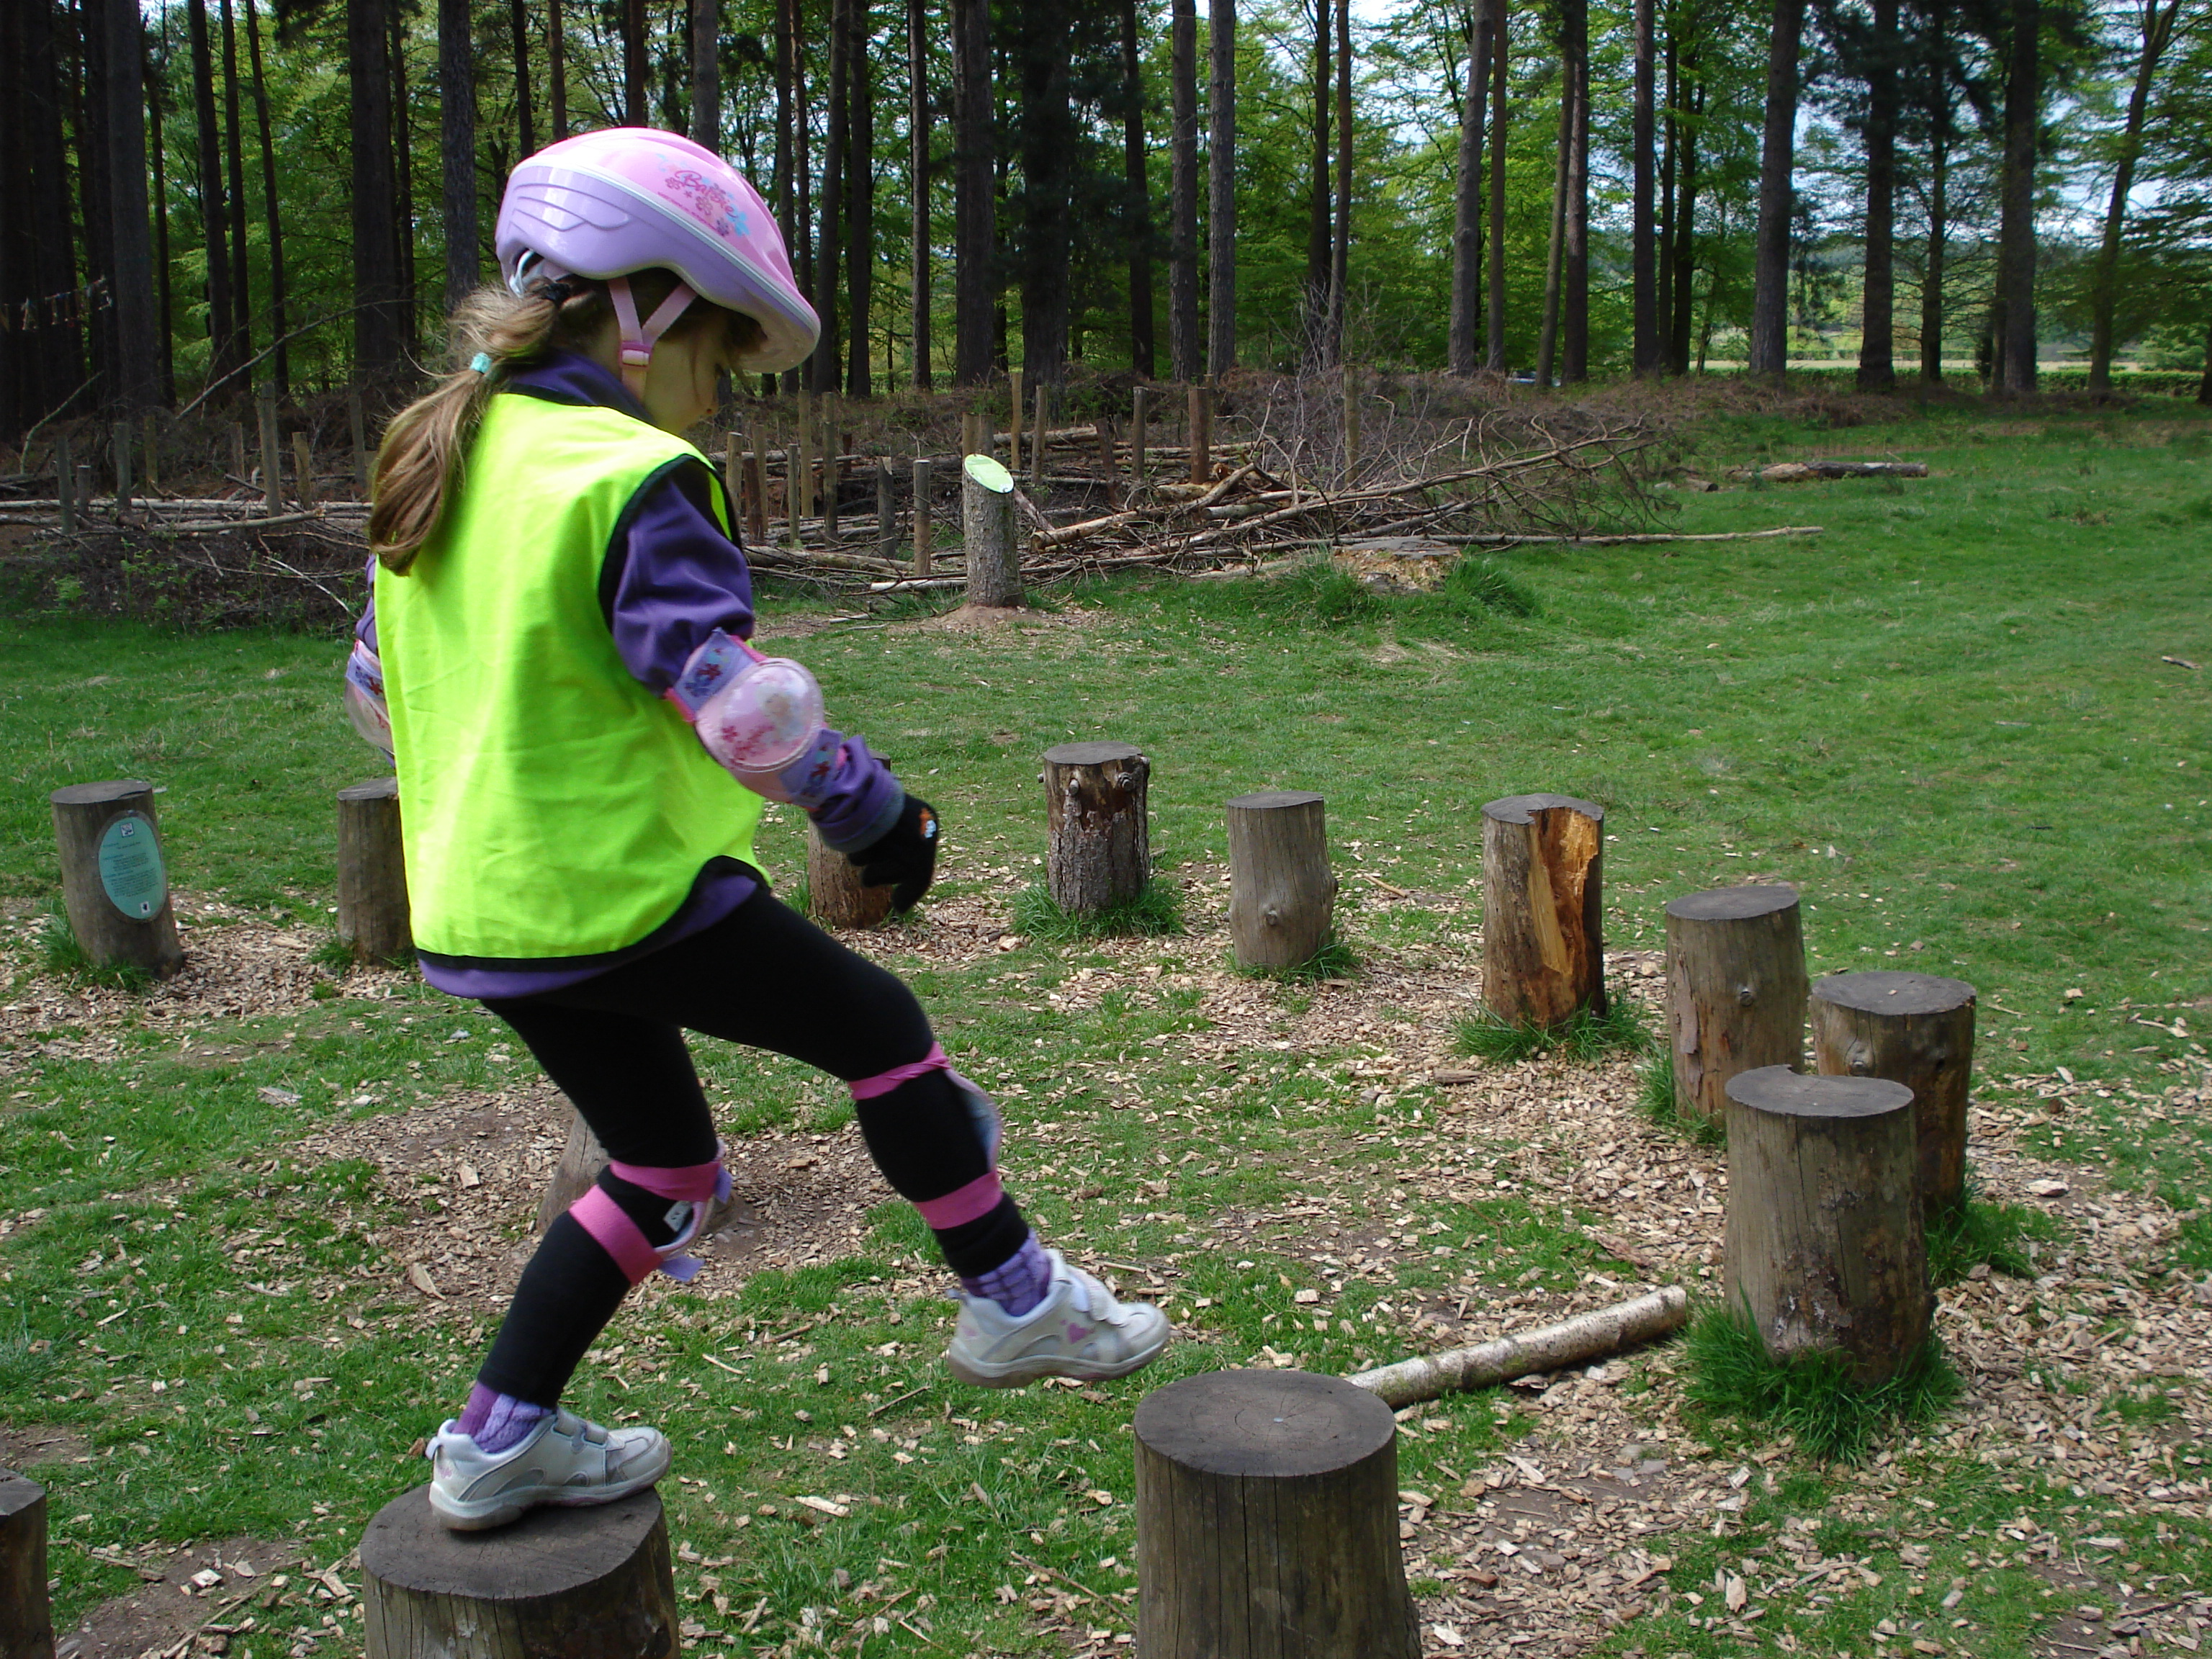 Junior Danny MacAskill in the making, soon she'll be doing it on a bike…